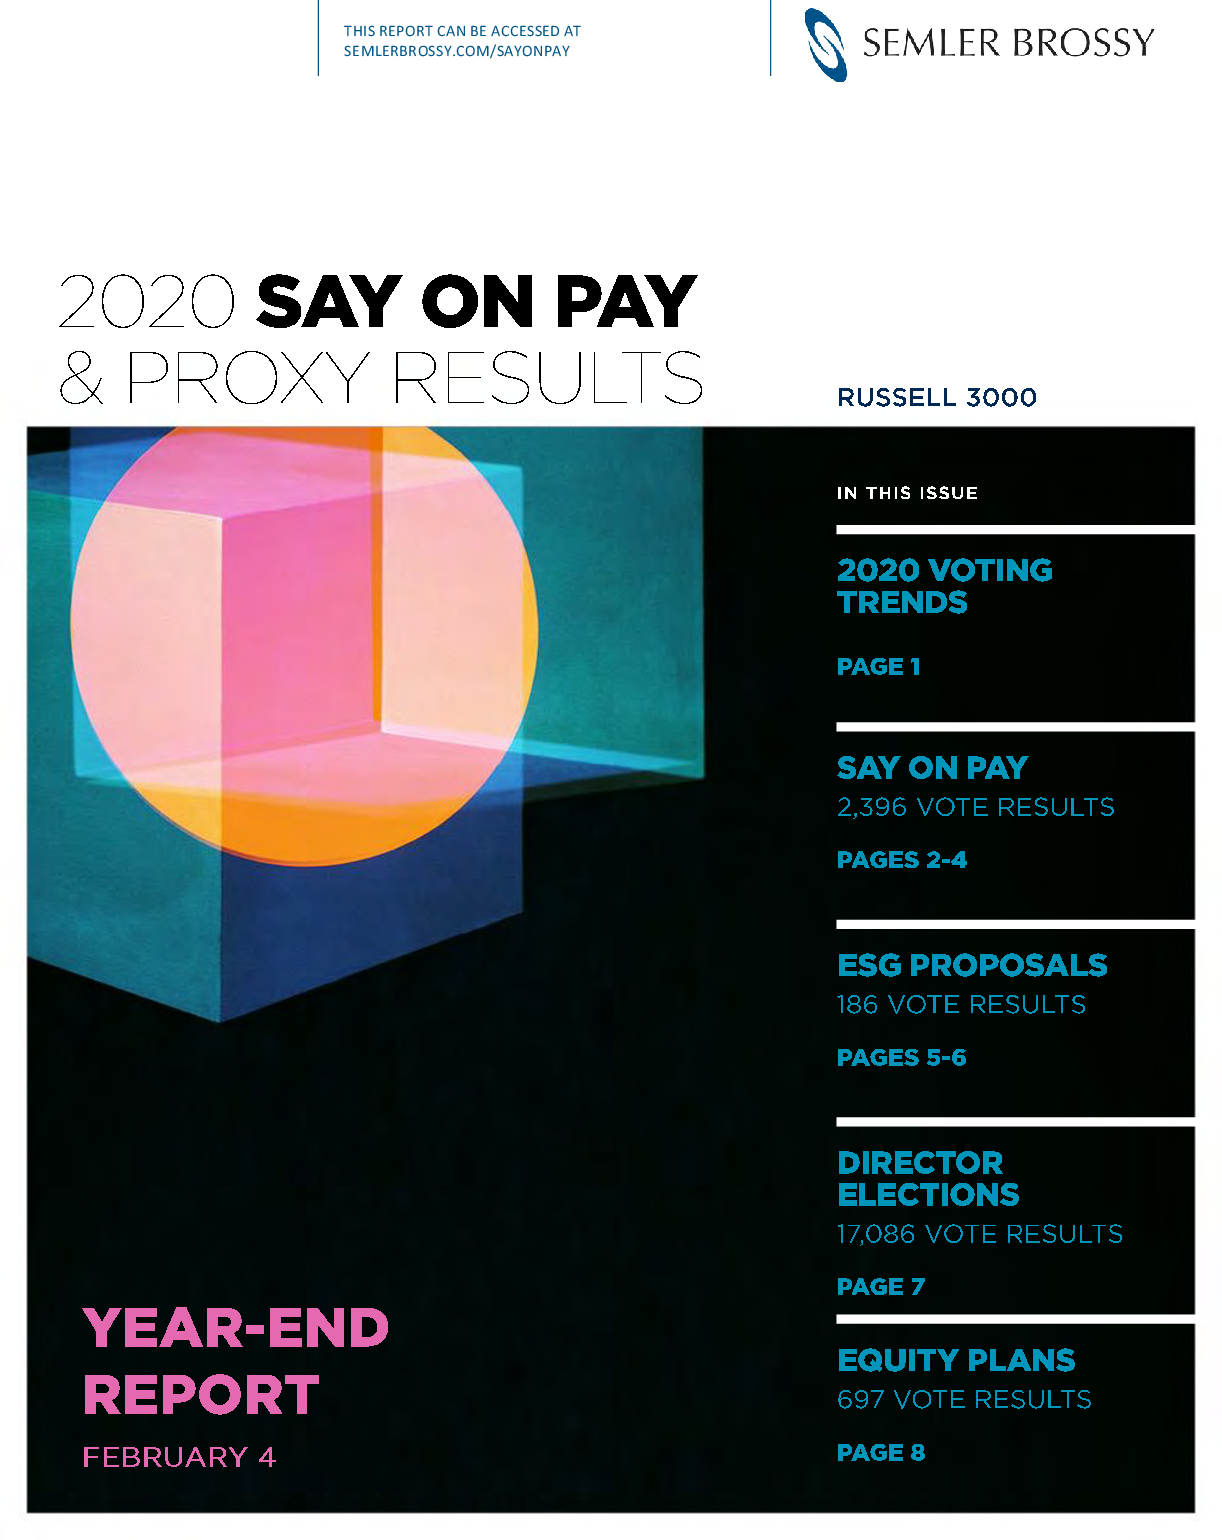 2020 Say on Pay Support Was Identical to 2019 Results, and a Look at 2020 Voting Trends